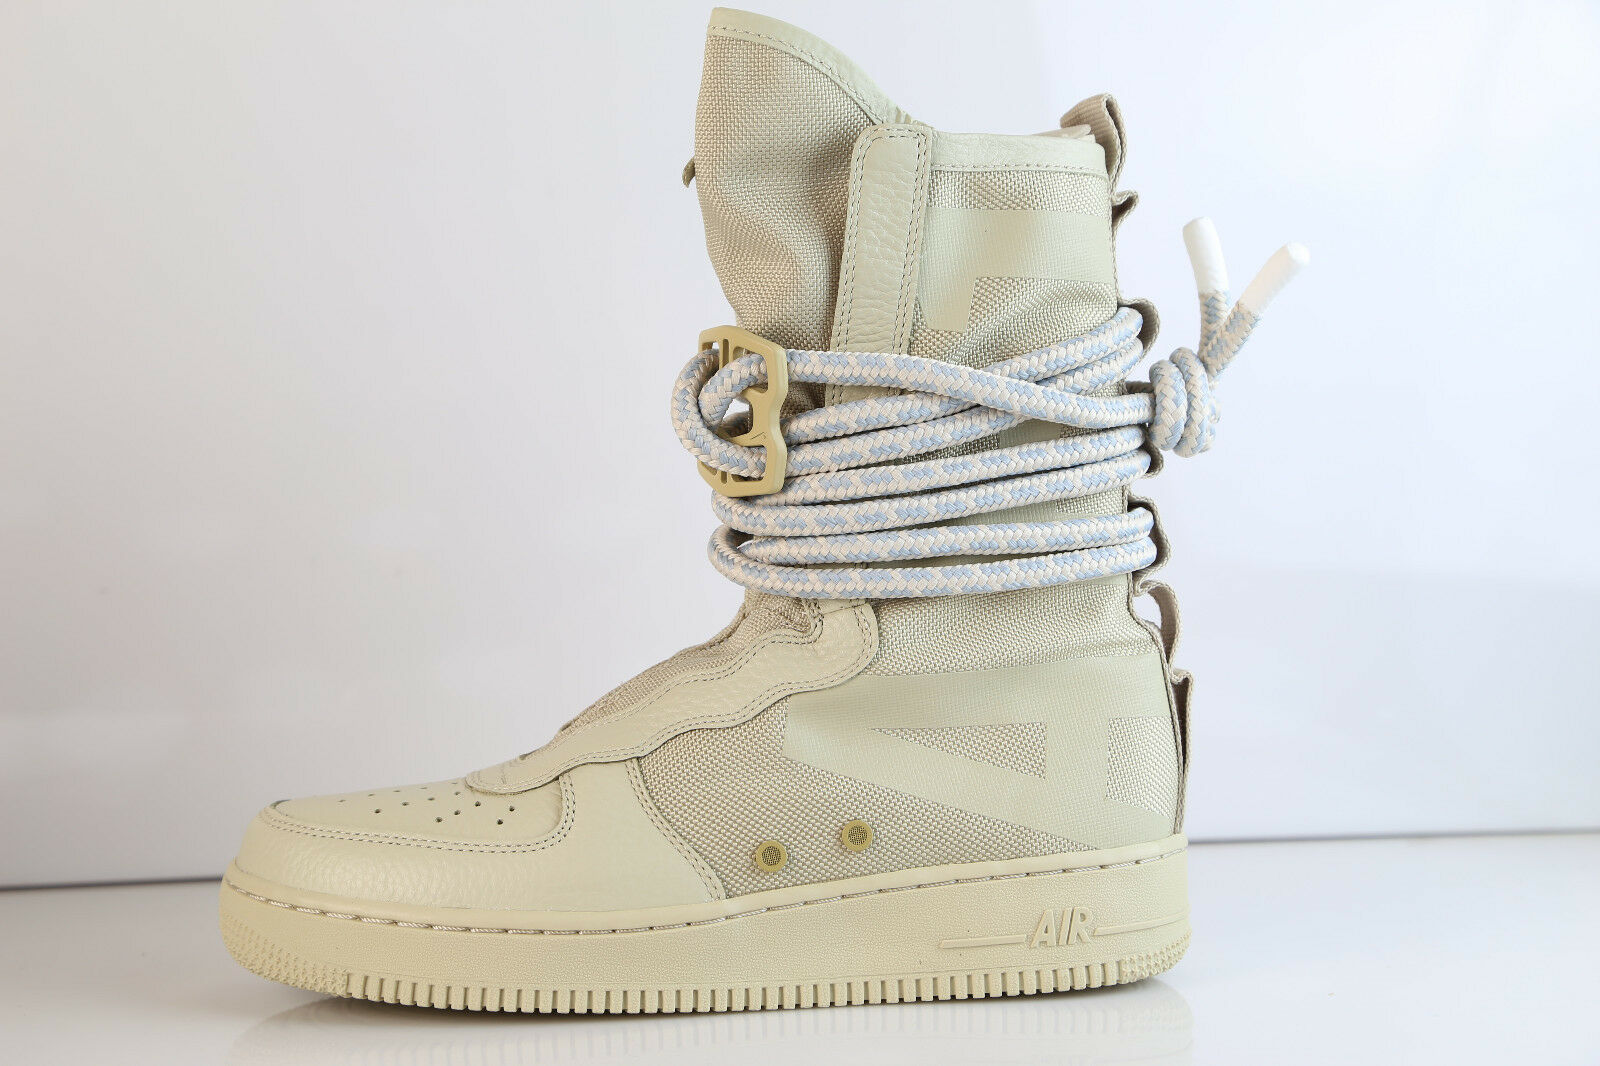 Nike SF AF1 Hi Rattan AA1128-200 9-13 air force boot special forces sp